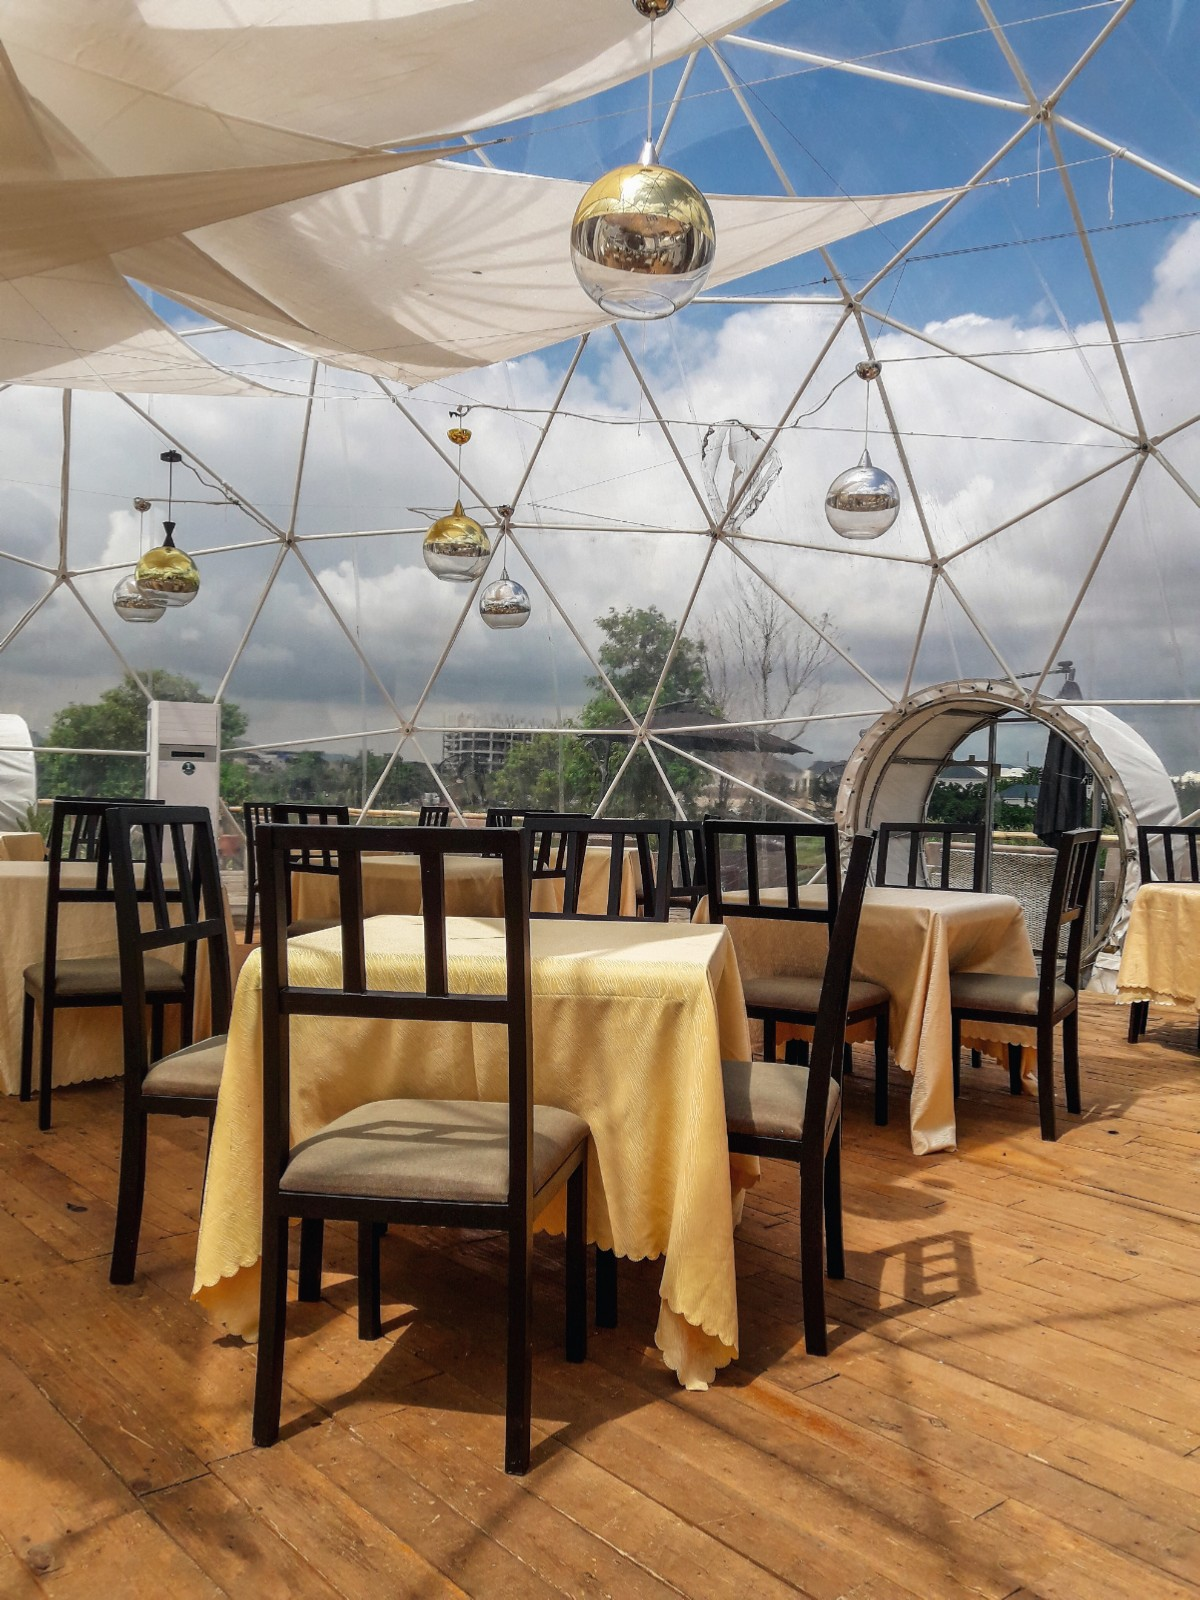 Pier Restaurant and Lounge Abuja